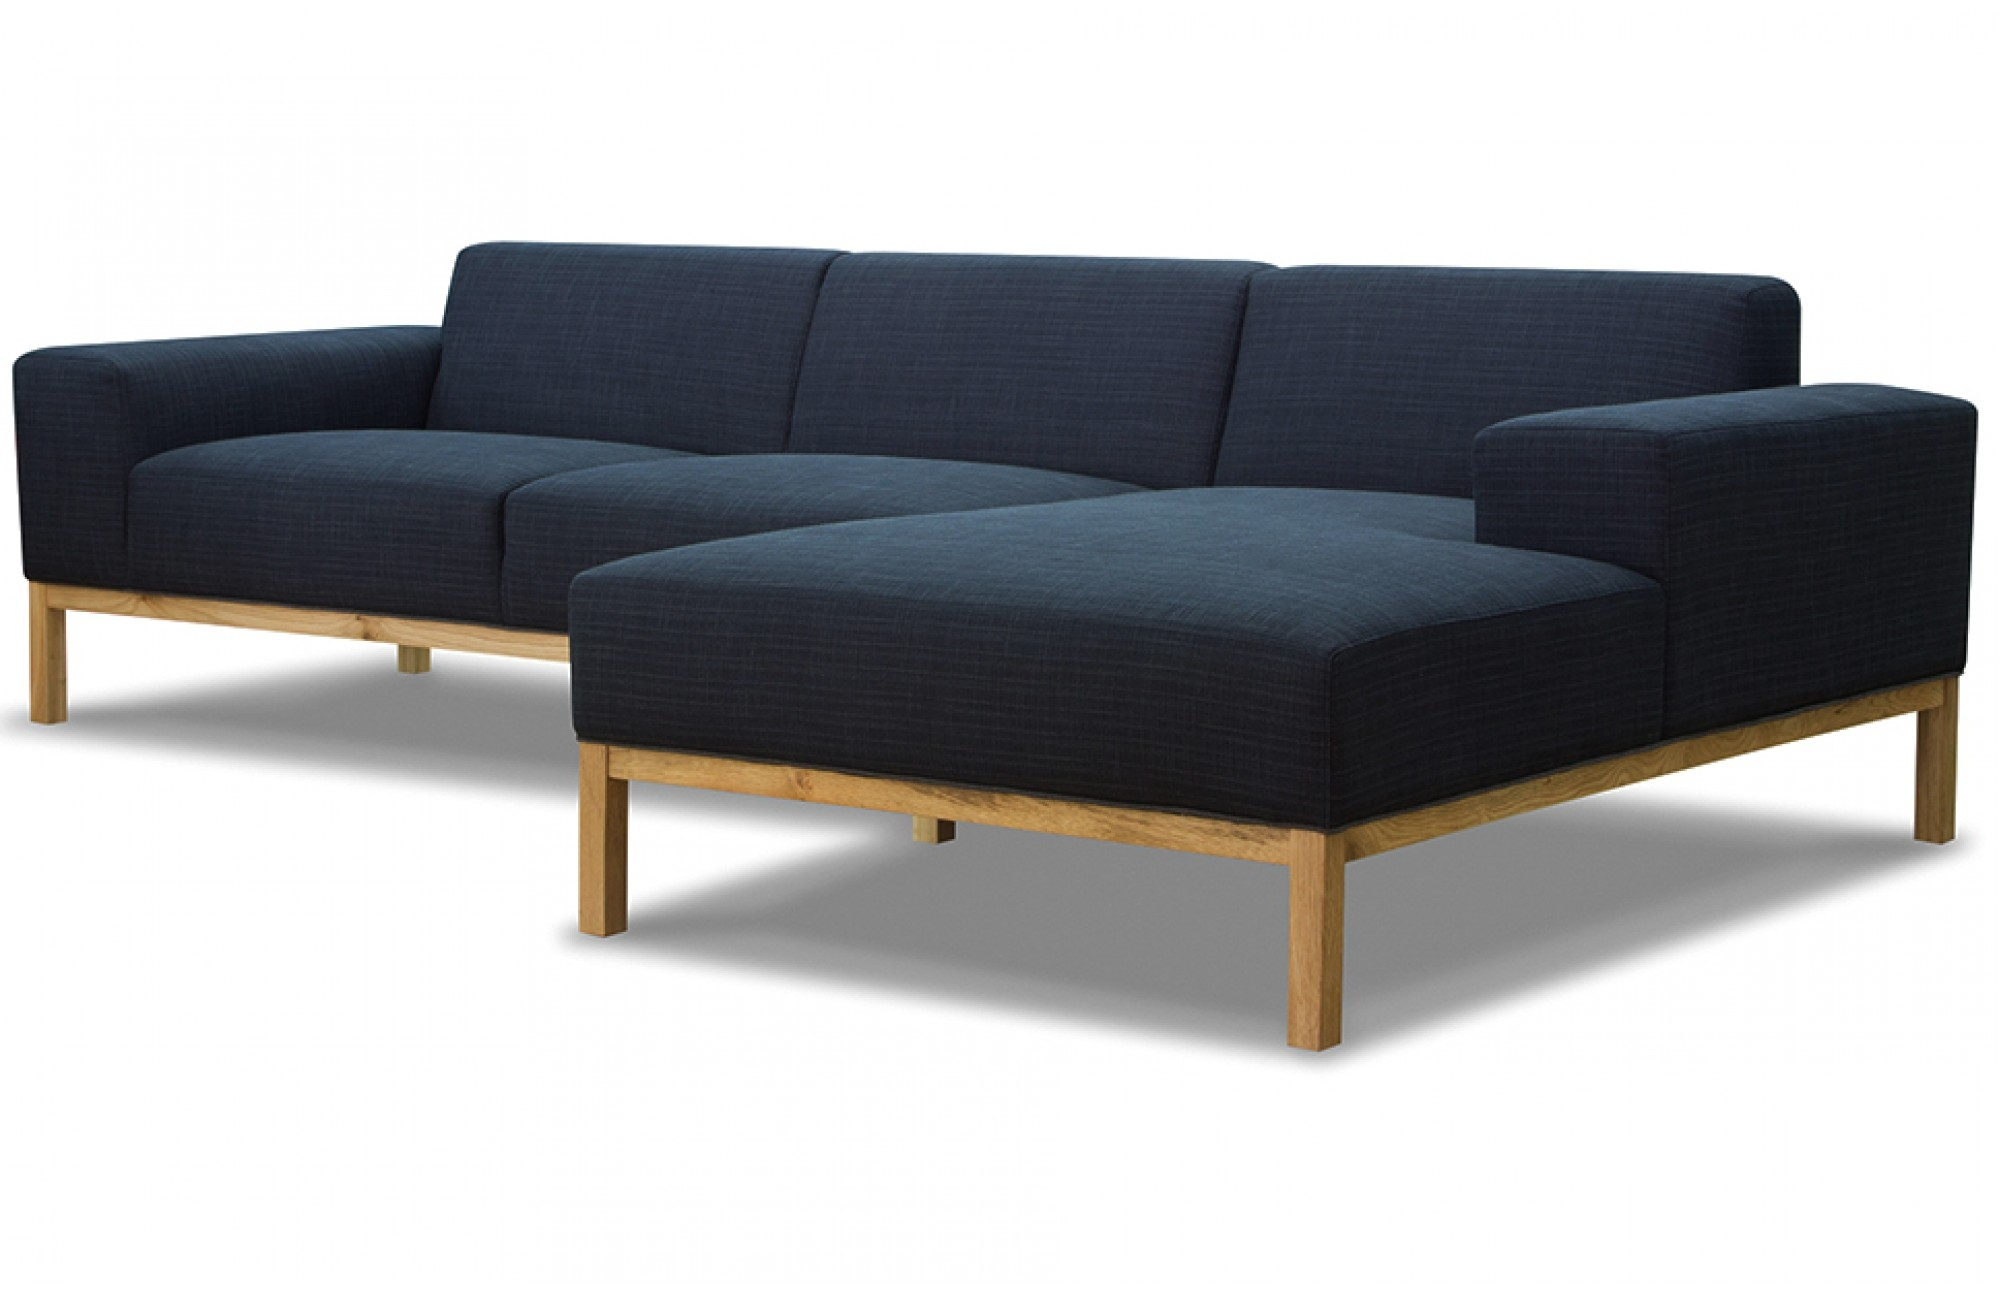 Modular Corner Sofas Sofa Menzilperde Throughout Modular Corner Sofas (Image 11 of 15)